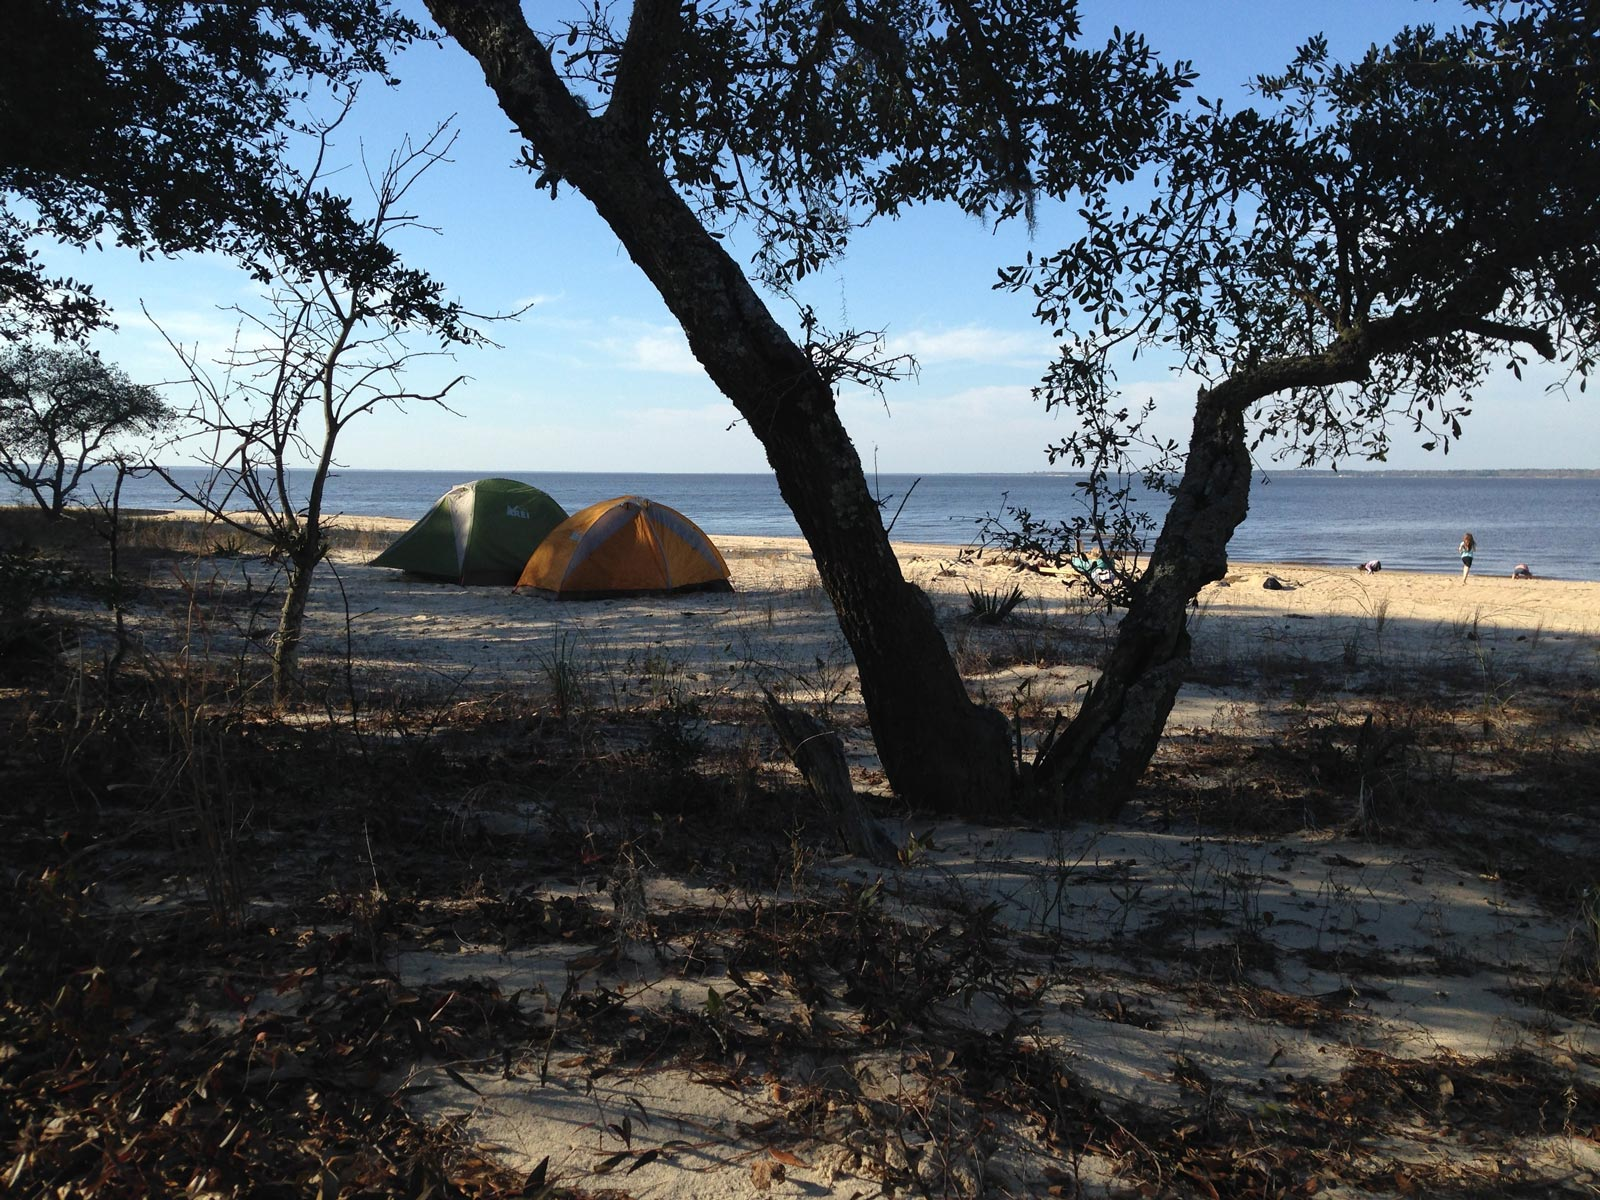 Photo of a beach front campsite in Croatan National Forest in North Carolina